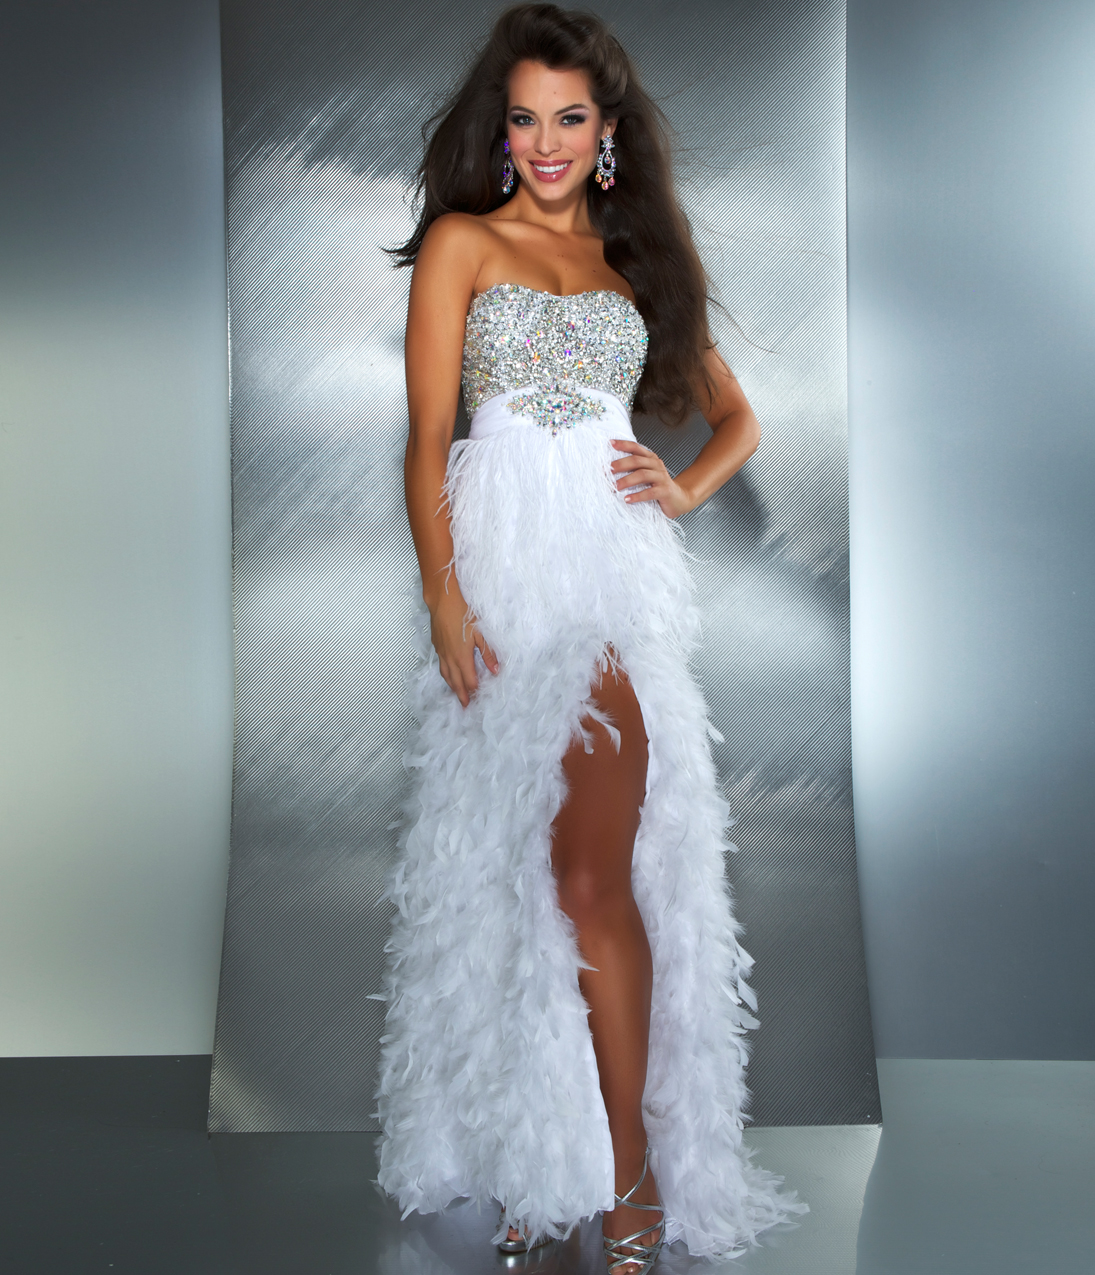 Feathered top prom dress - Prom dress style